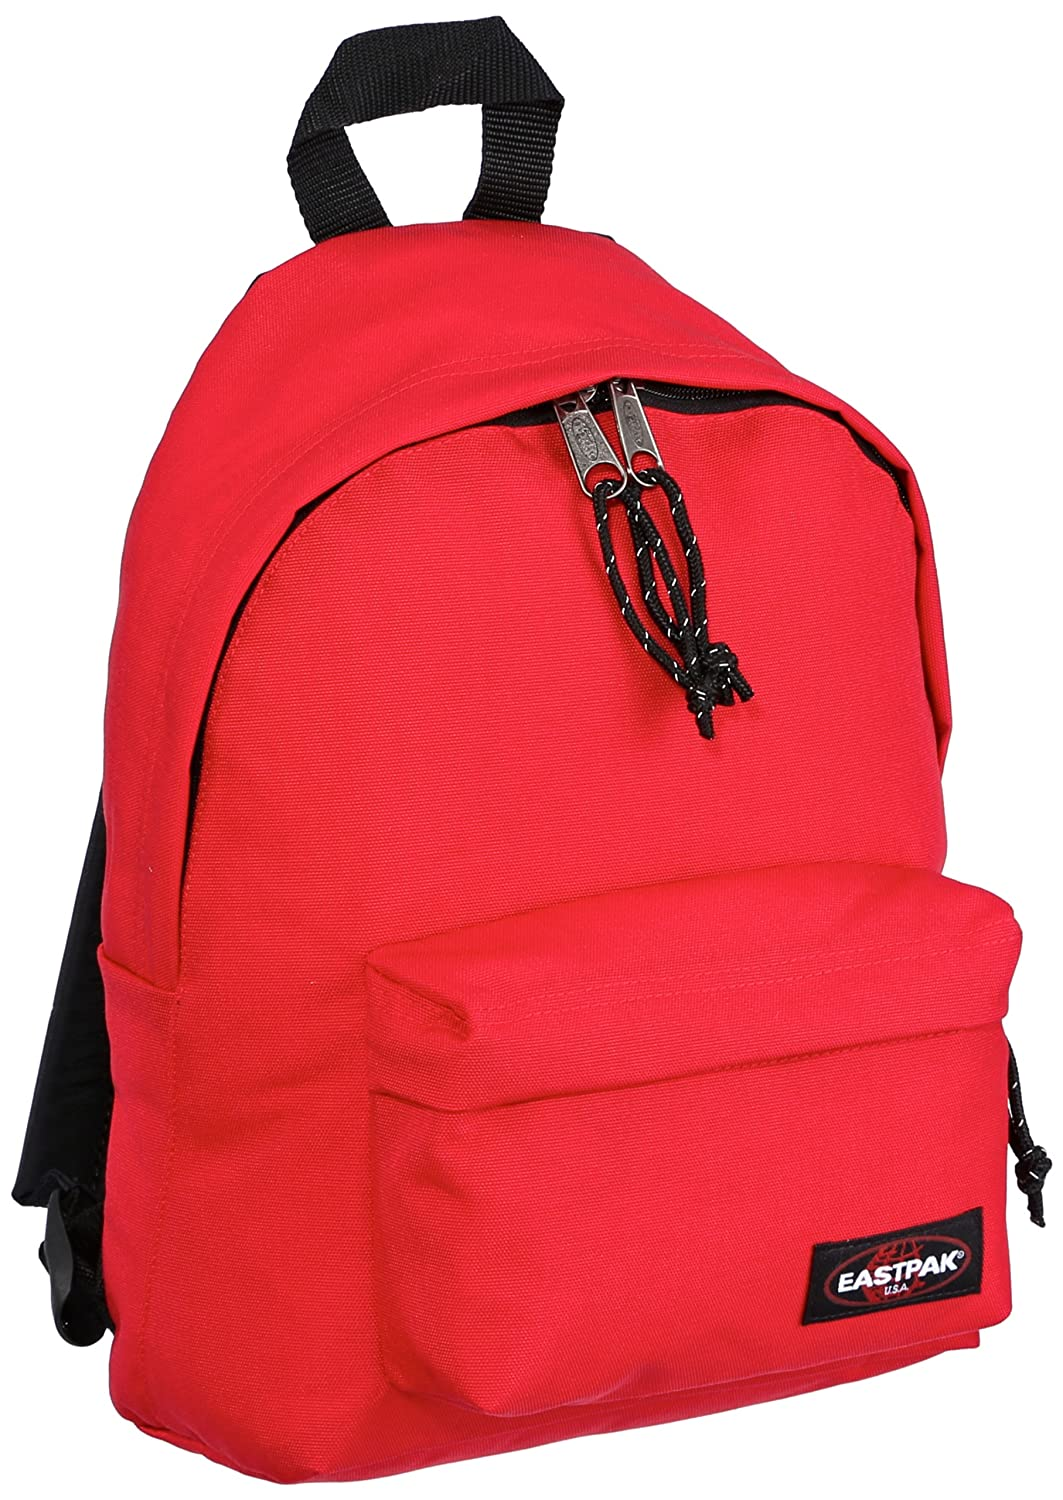 Eastpak - Orbit - Petit Sac à Dos - 10 L - Rouge (Chuppachop Red)